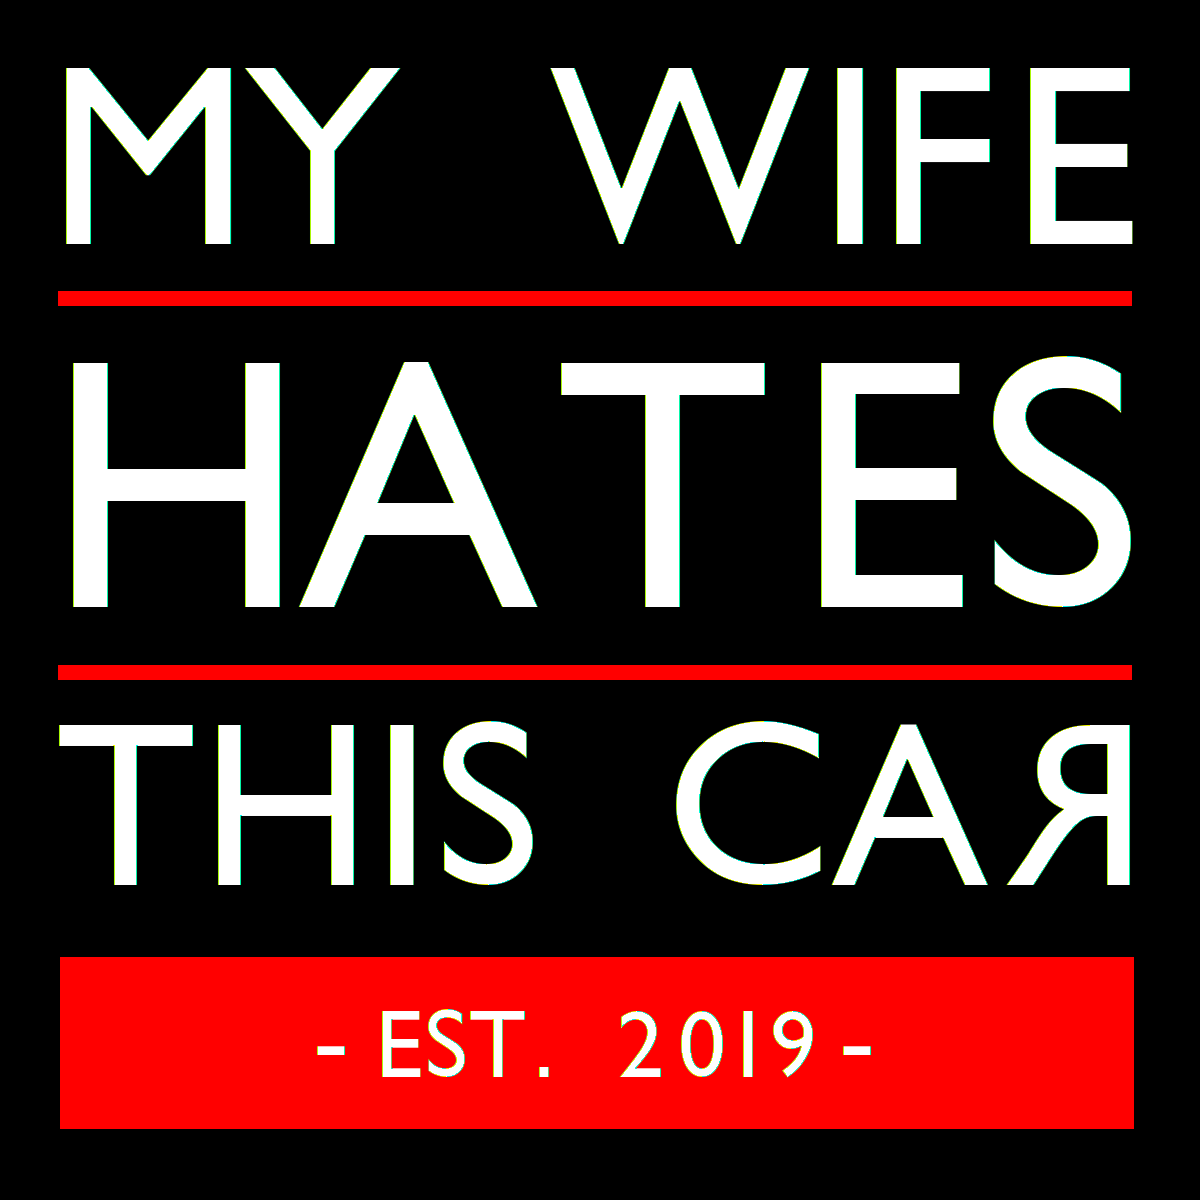 My Wife Hates This Car